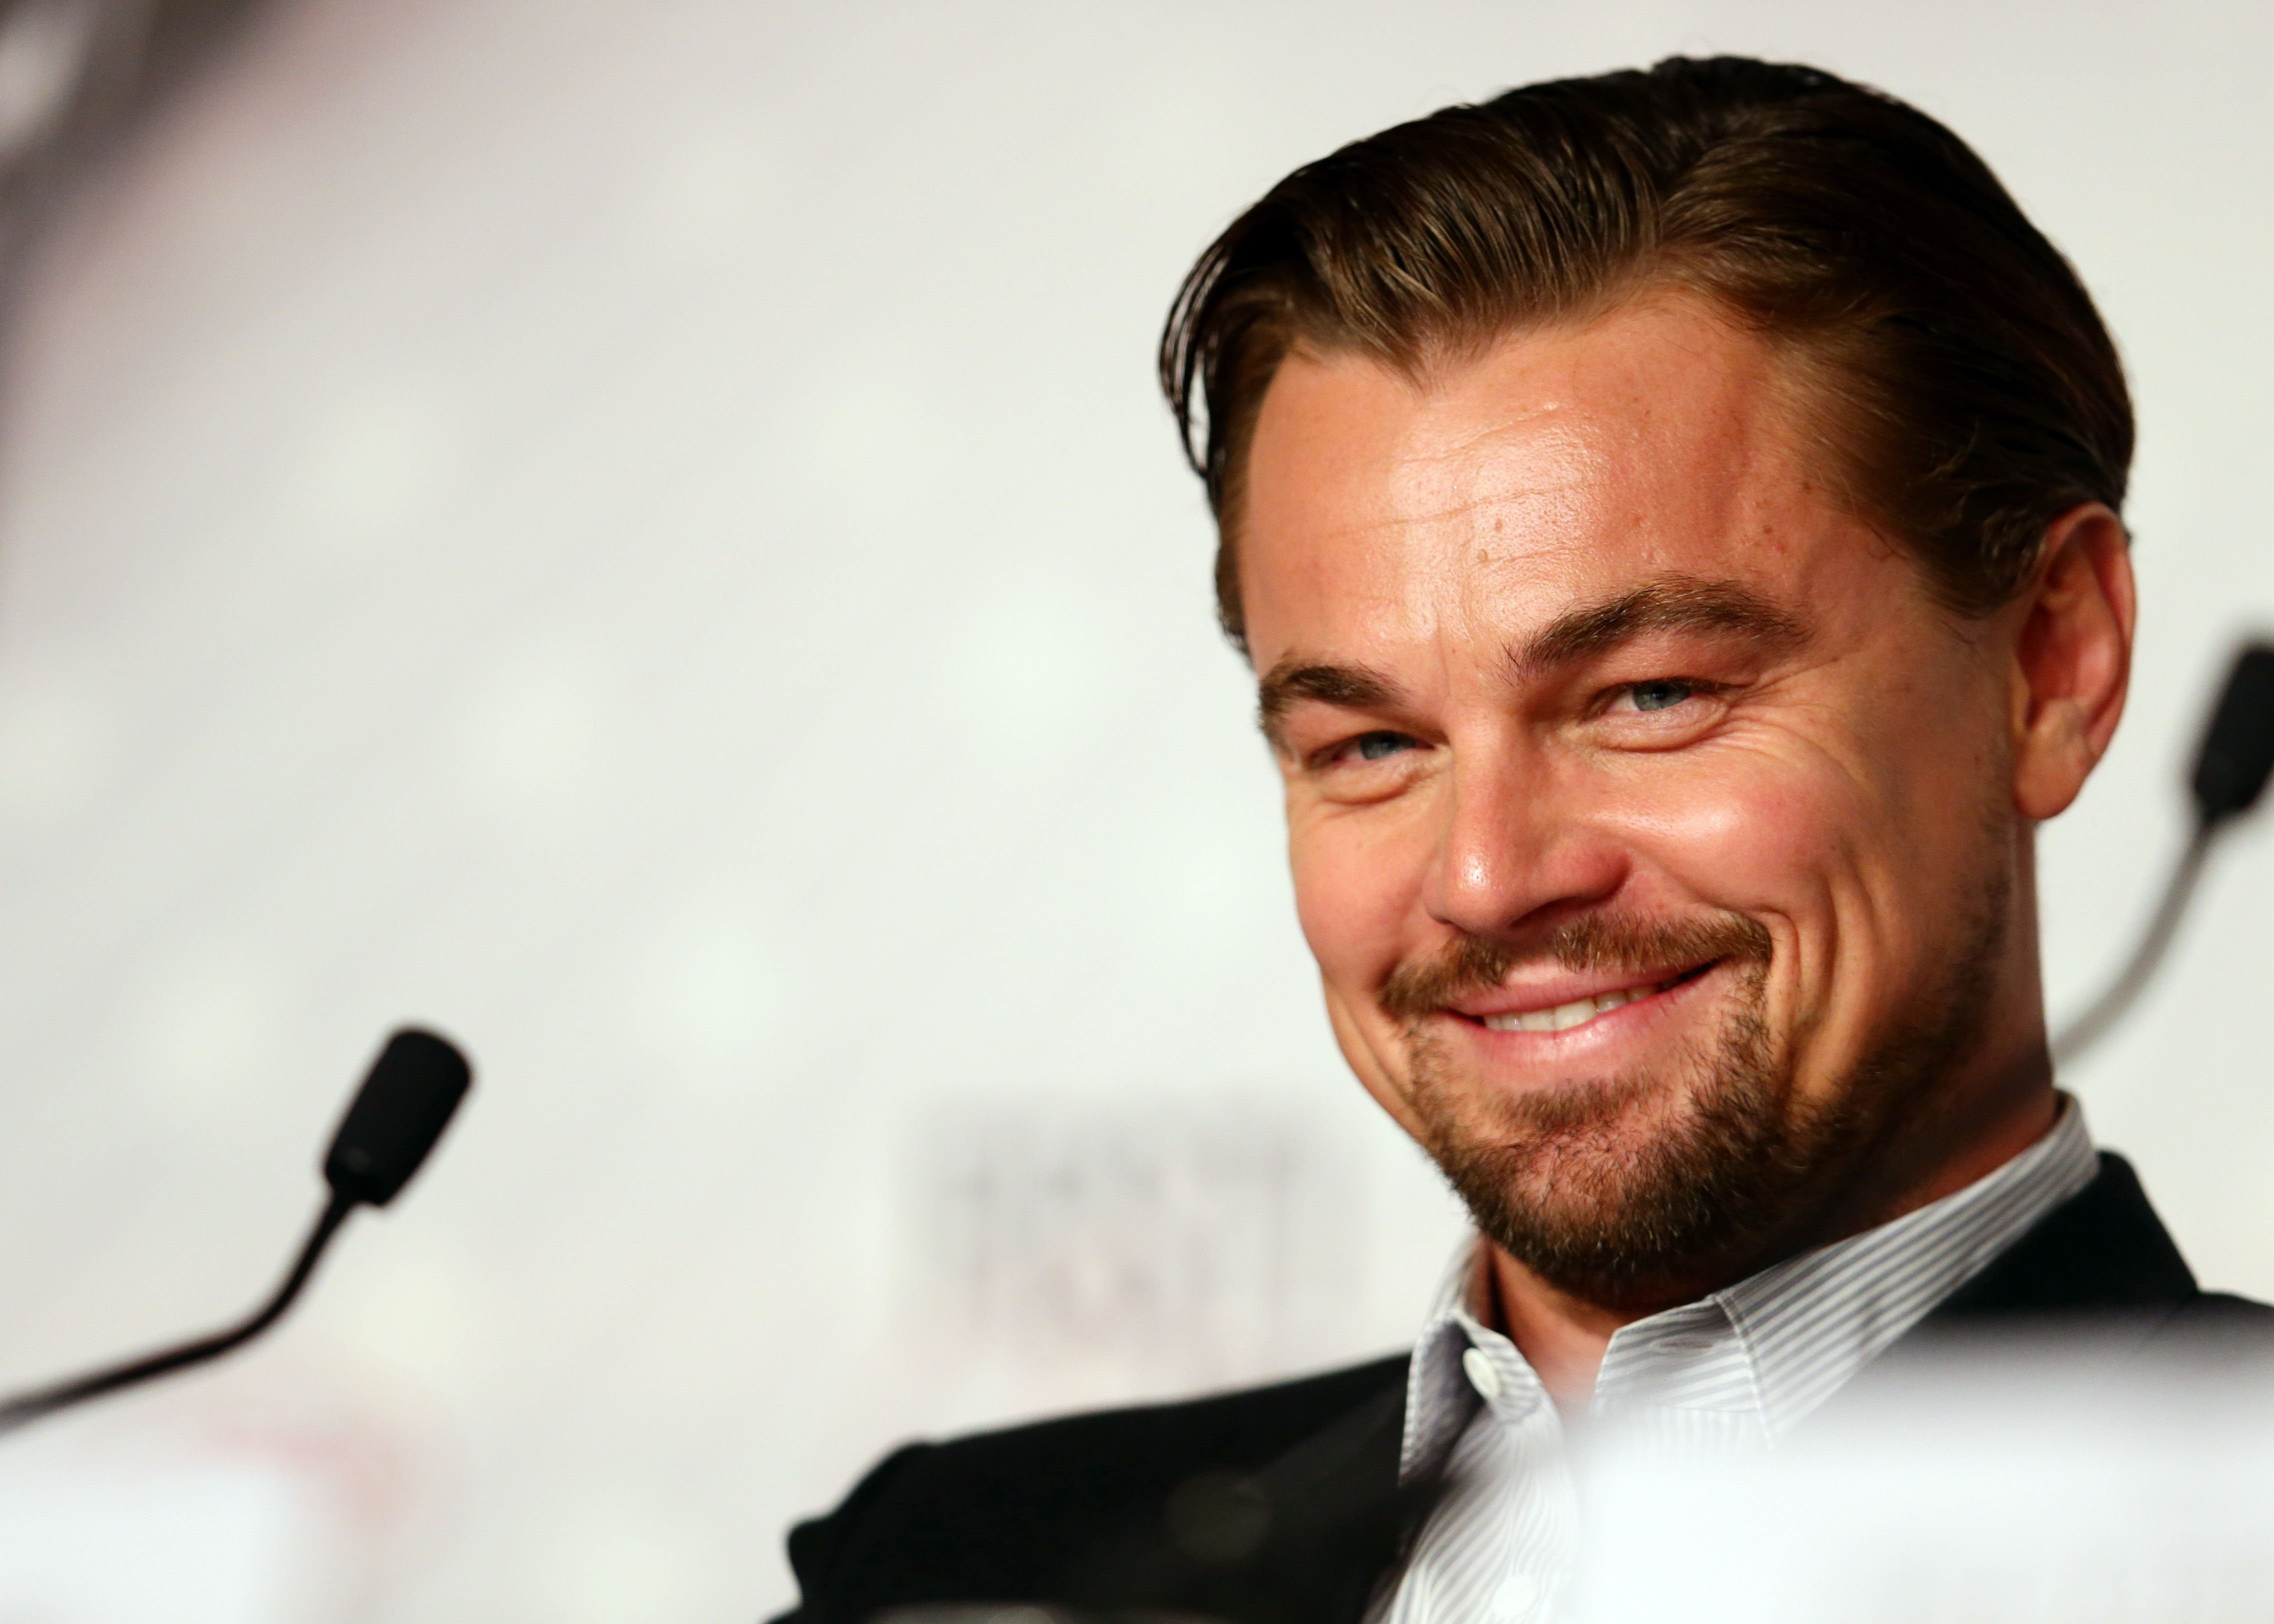 """Leonardo DiCaprio at the """"The Great Gatsby"""" press conference at the Cannes Film Festival in 2013 in France 